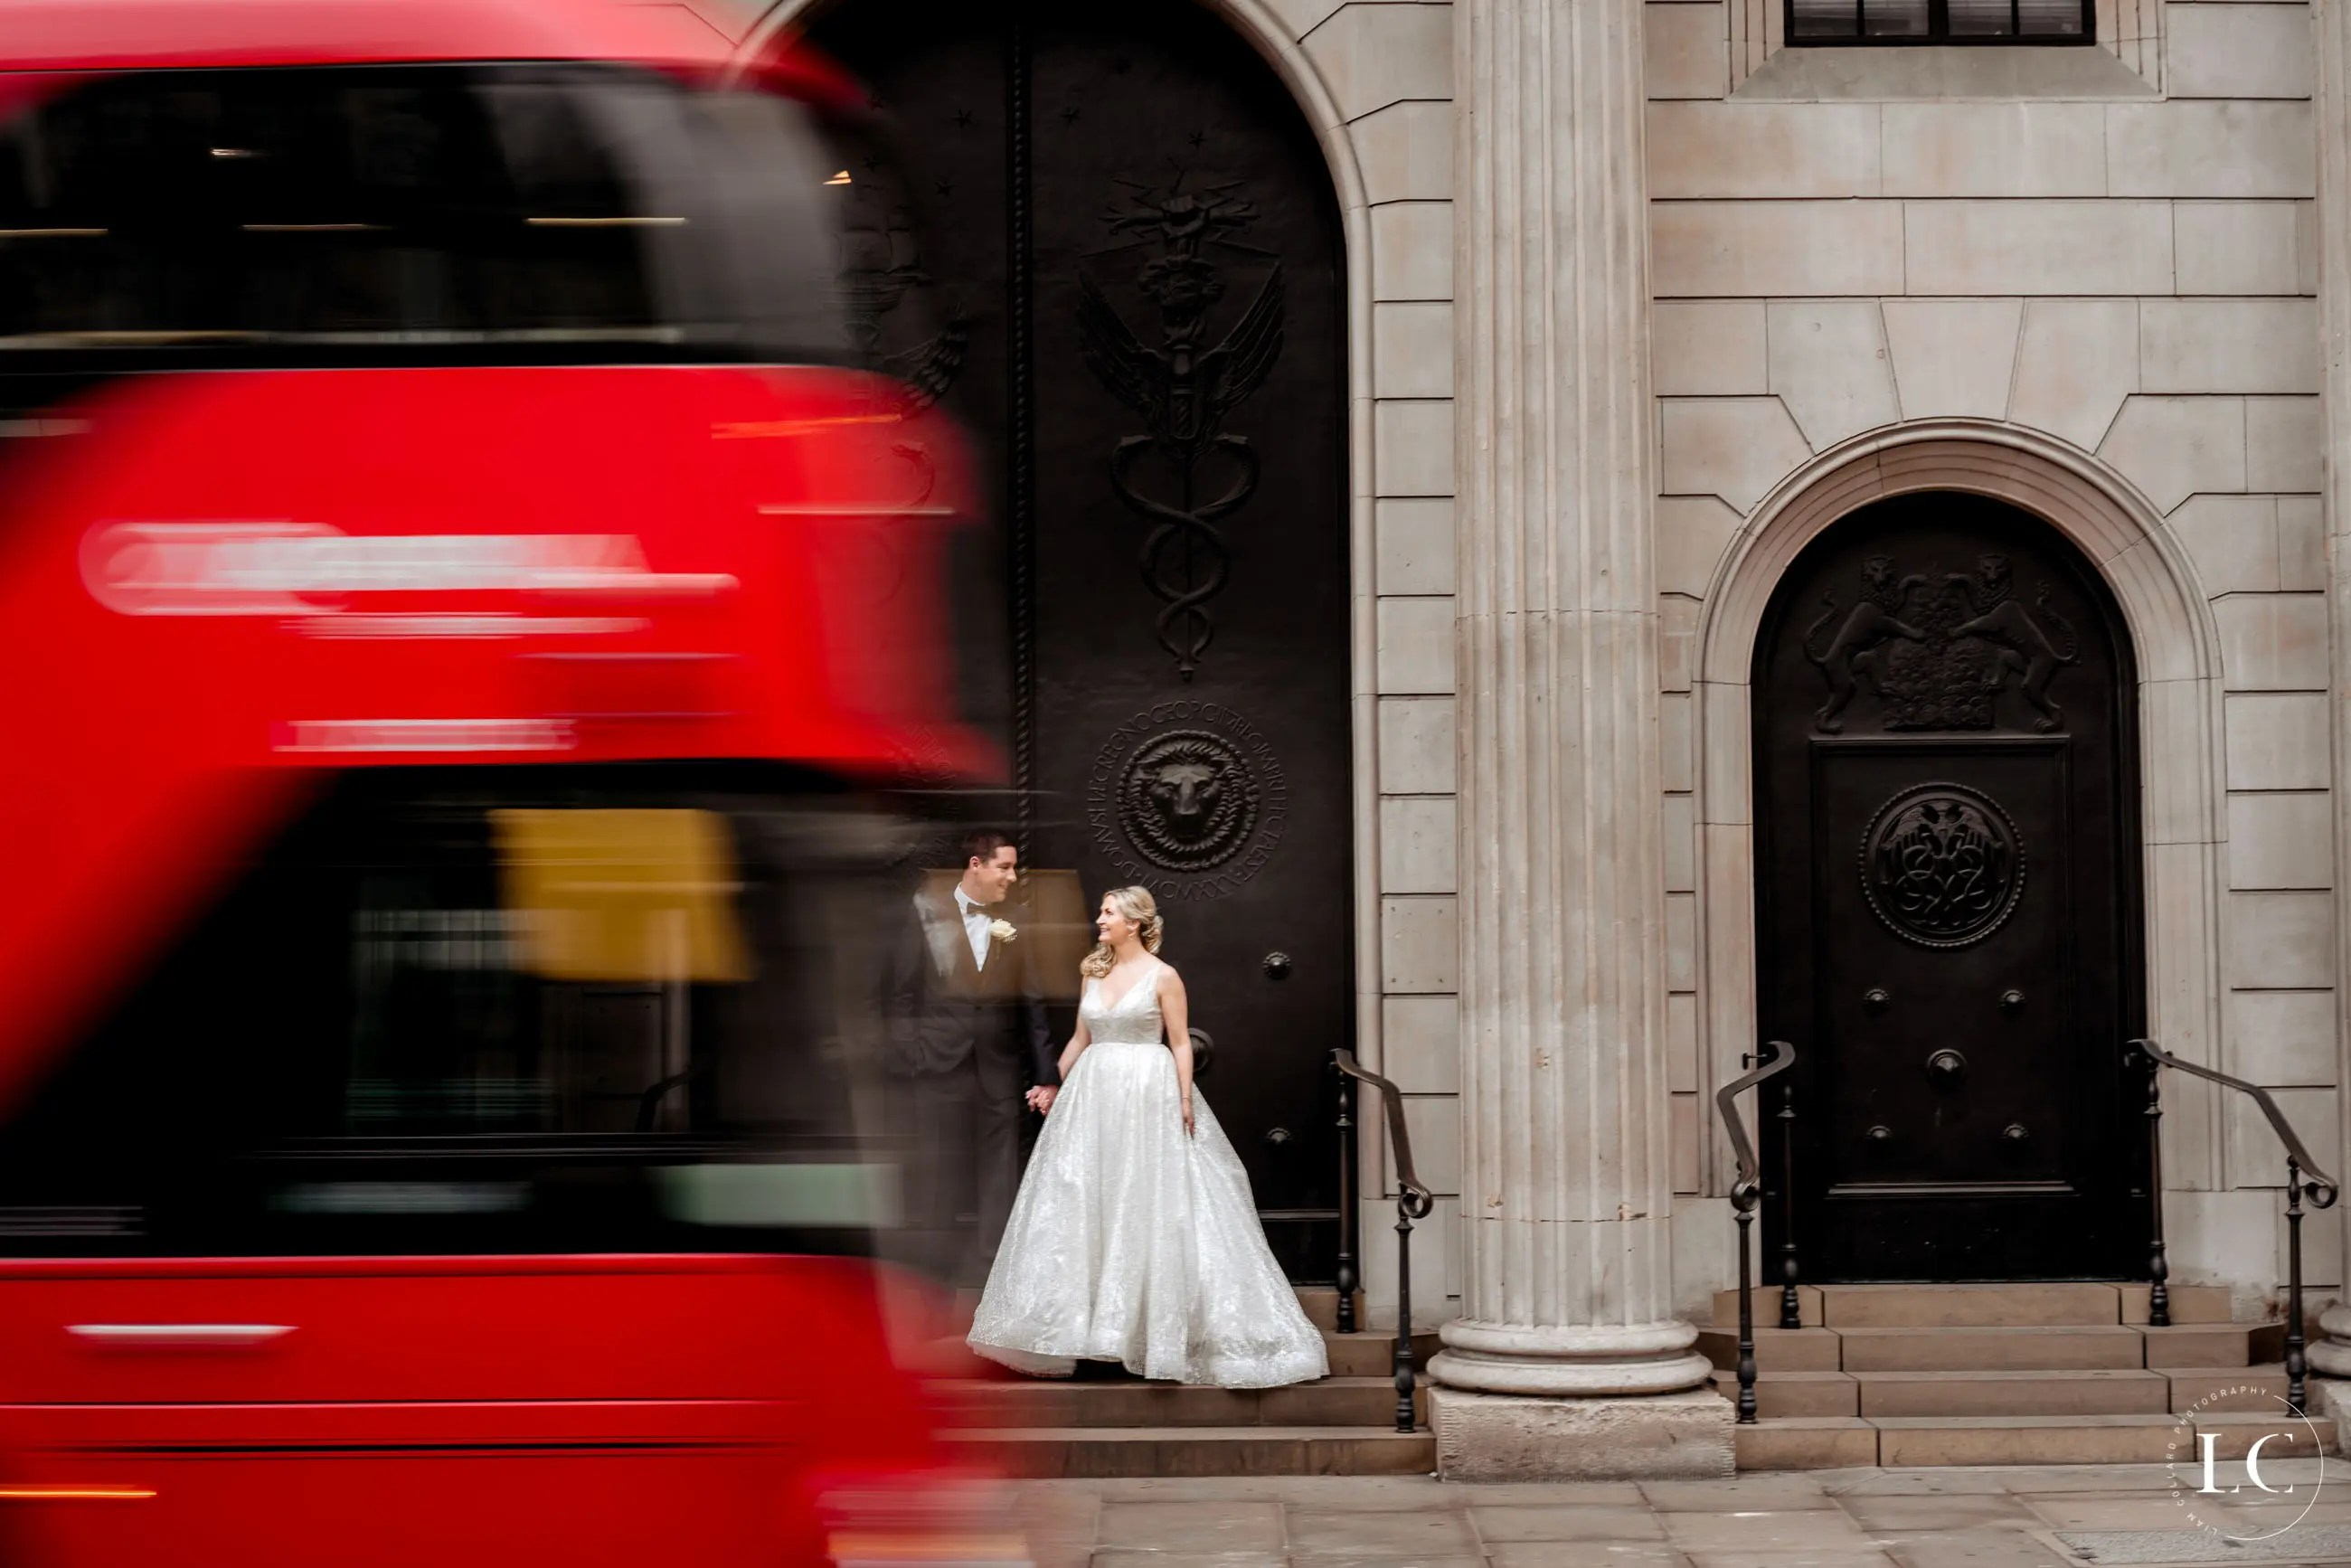 Bride and groom with London bus